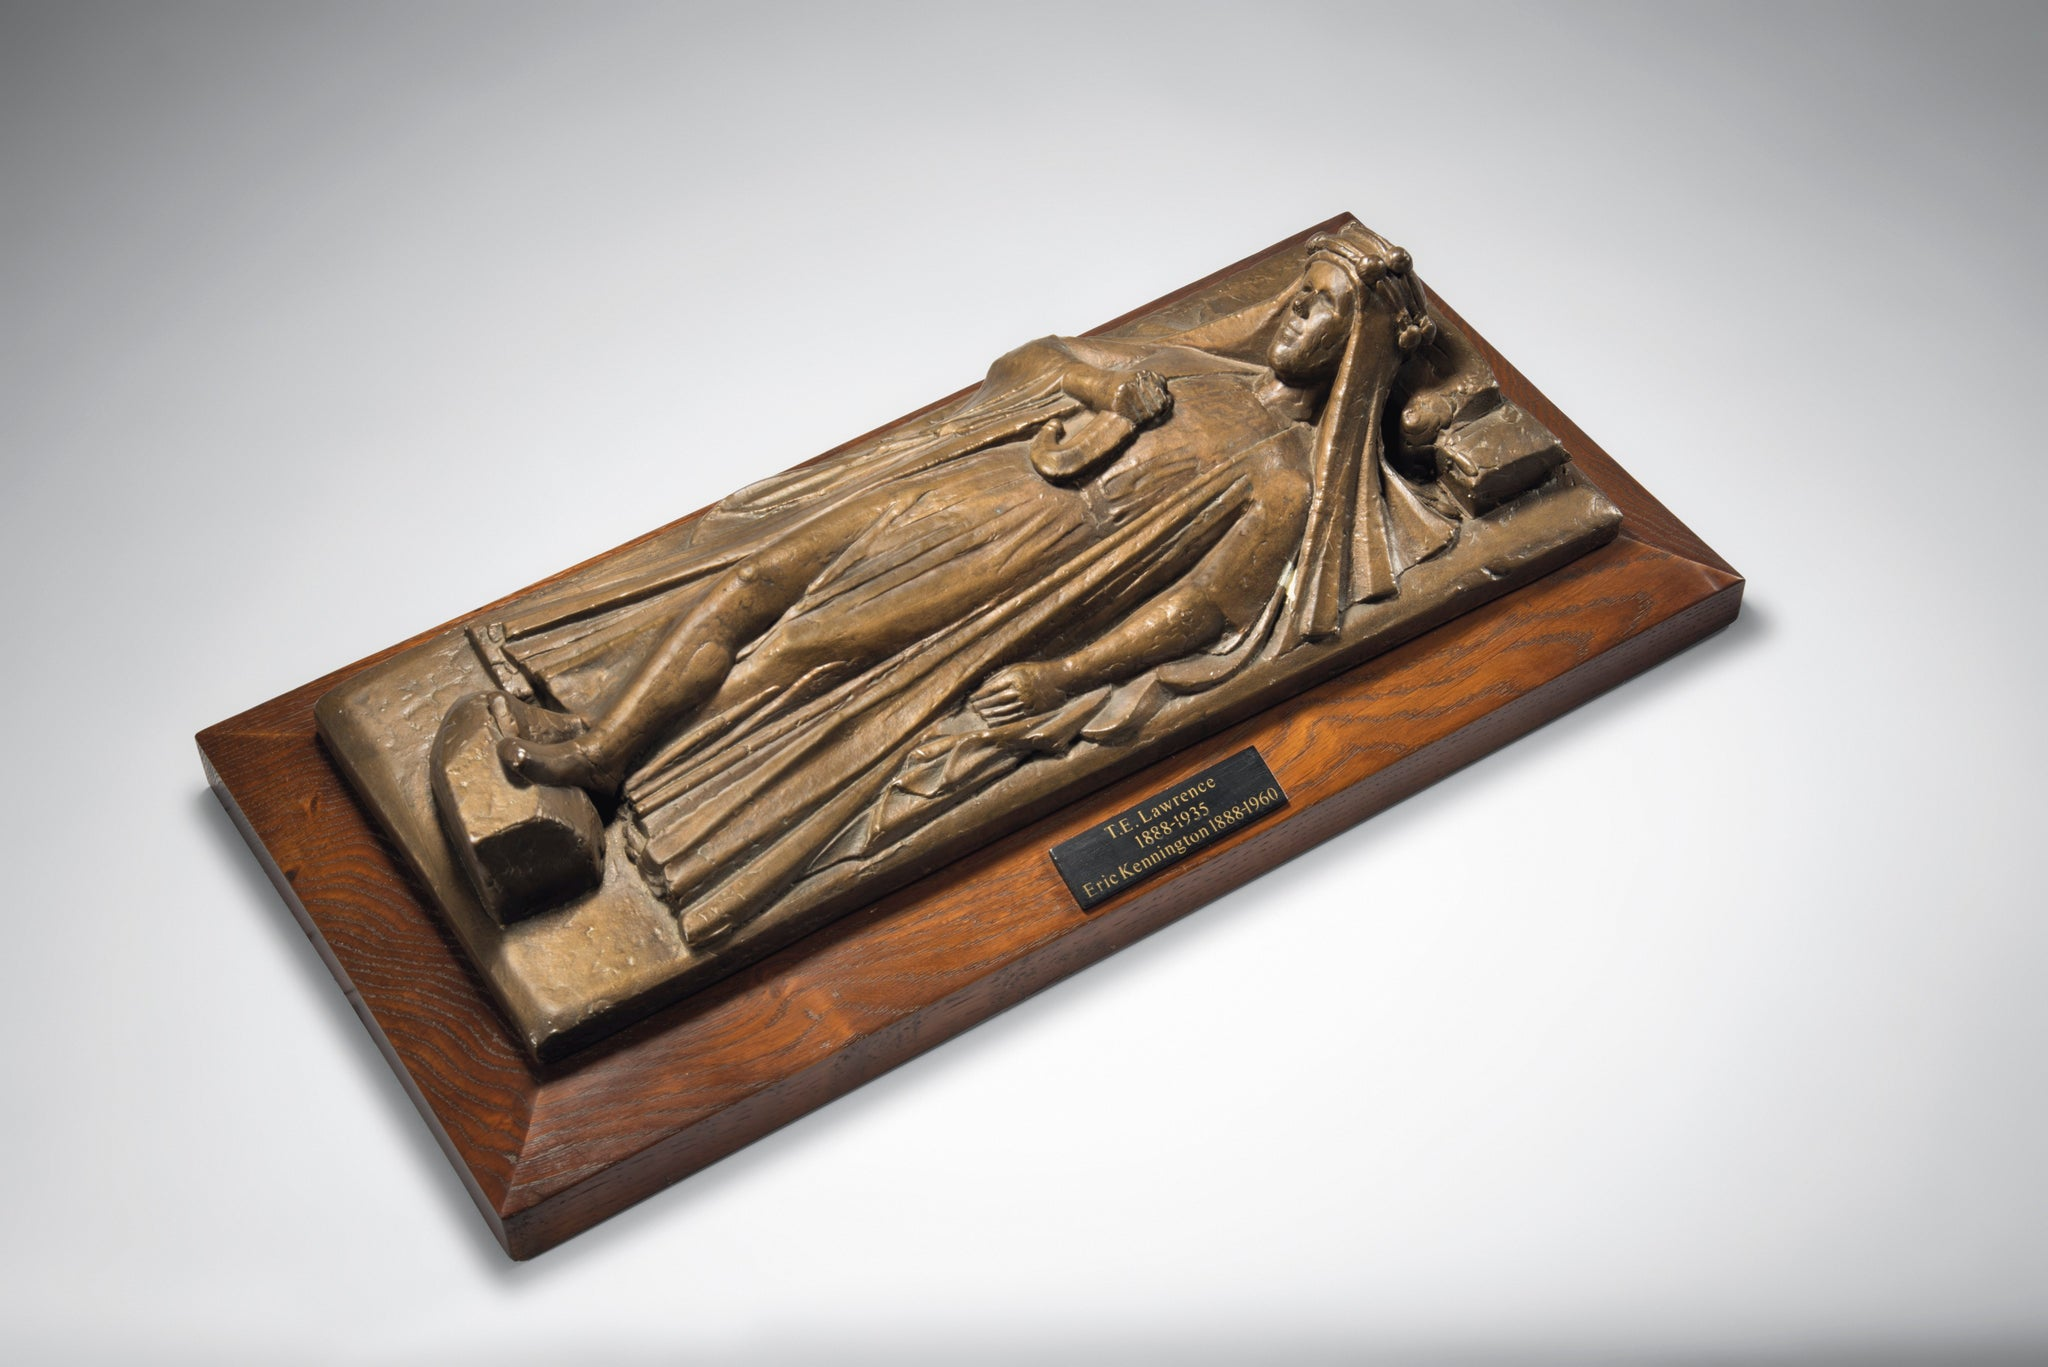 Recumbent Effigy of T.E. Lawrence by Eric Kennington, R.A. (1888-1960)